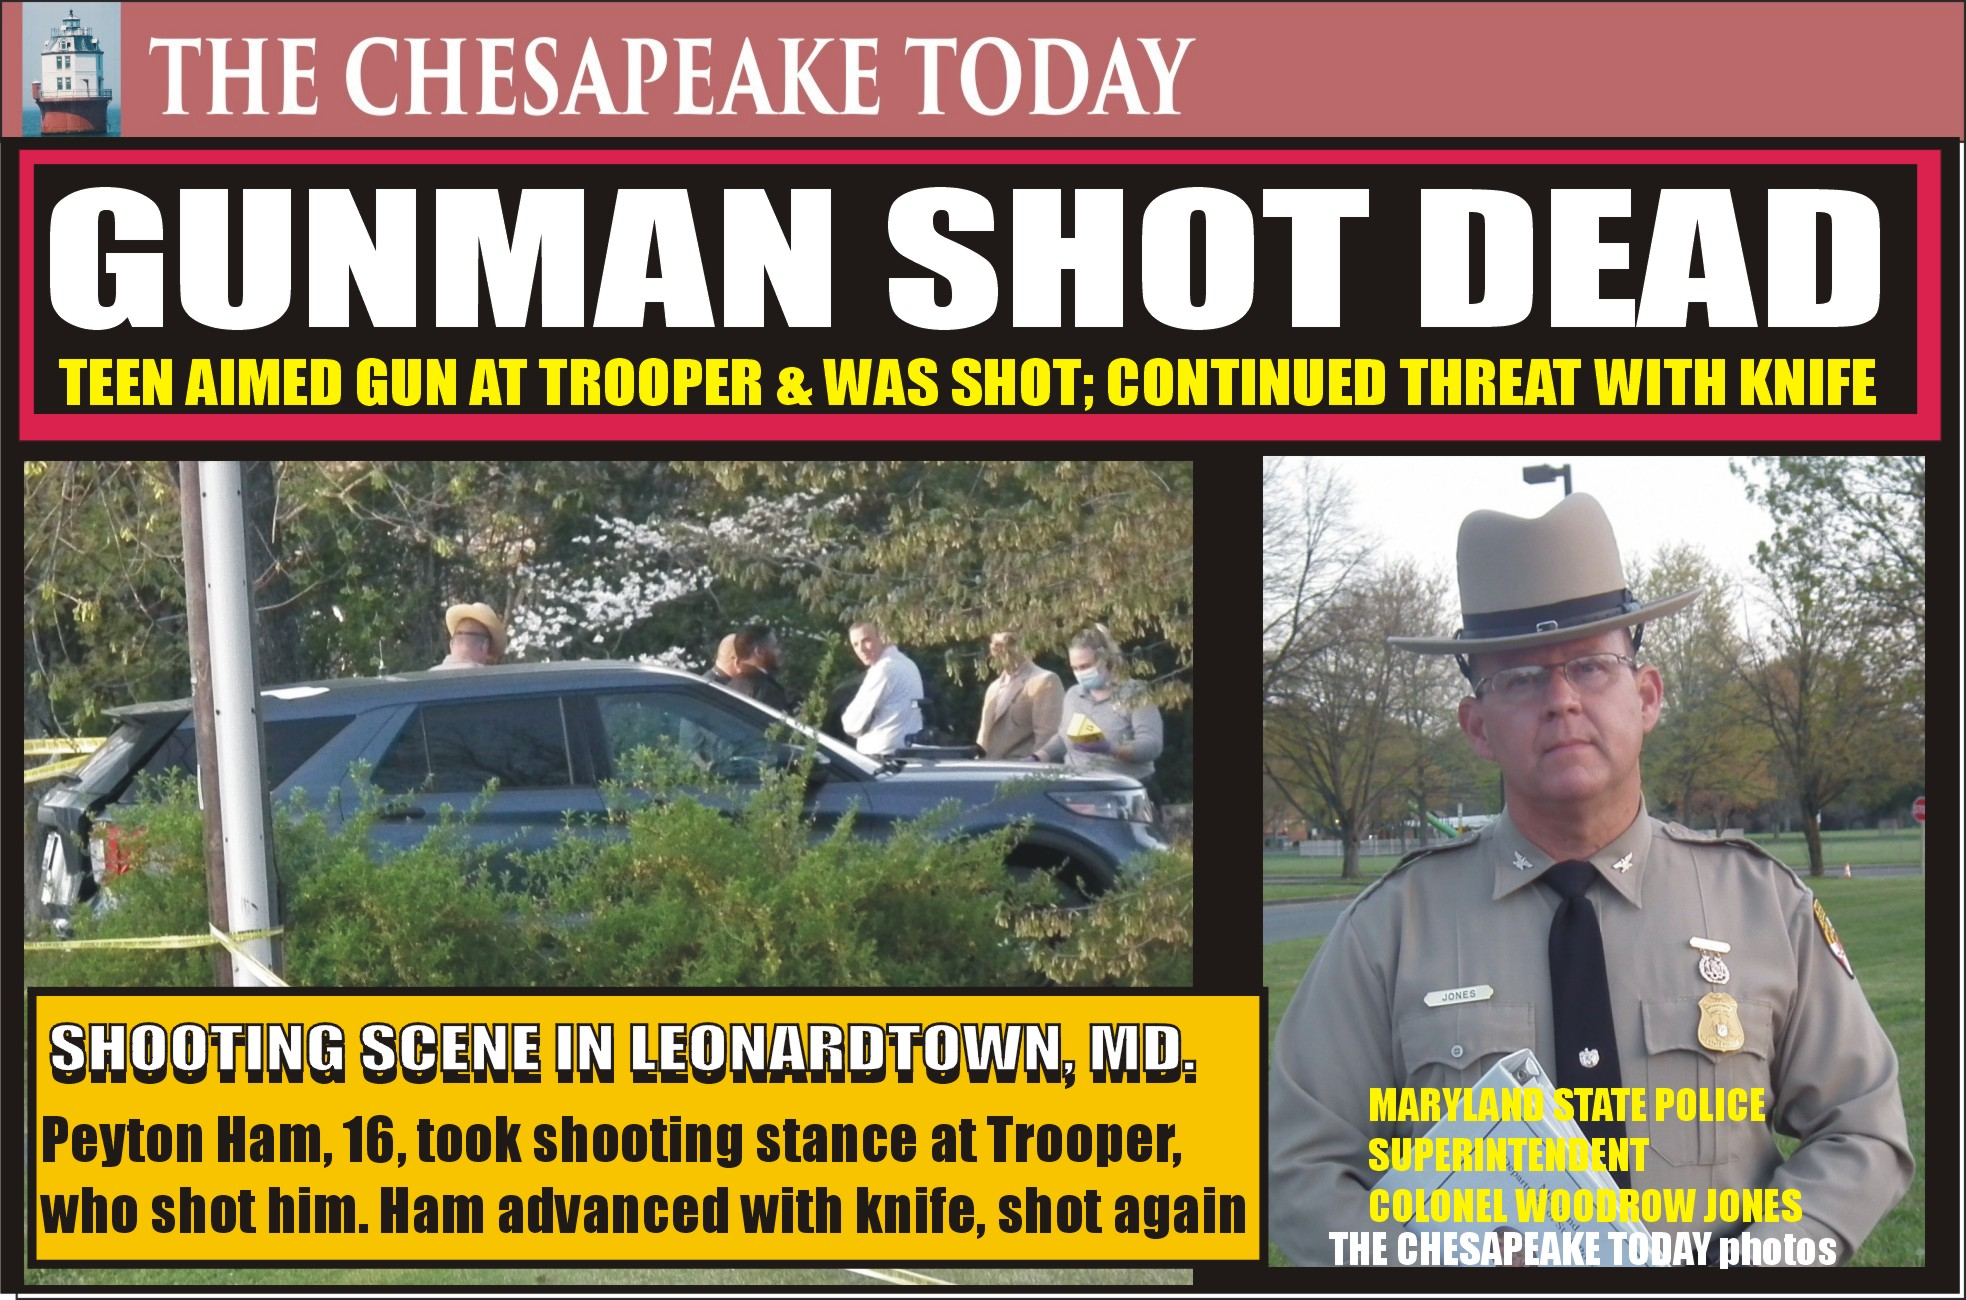 TEEN TOOK AIM AT TROOPER: Peyton Ham's shooting stance and aim at a Maryland trooper resulted in the trooper shooting him, Ham advanced with a knife and was shot dead